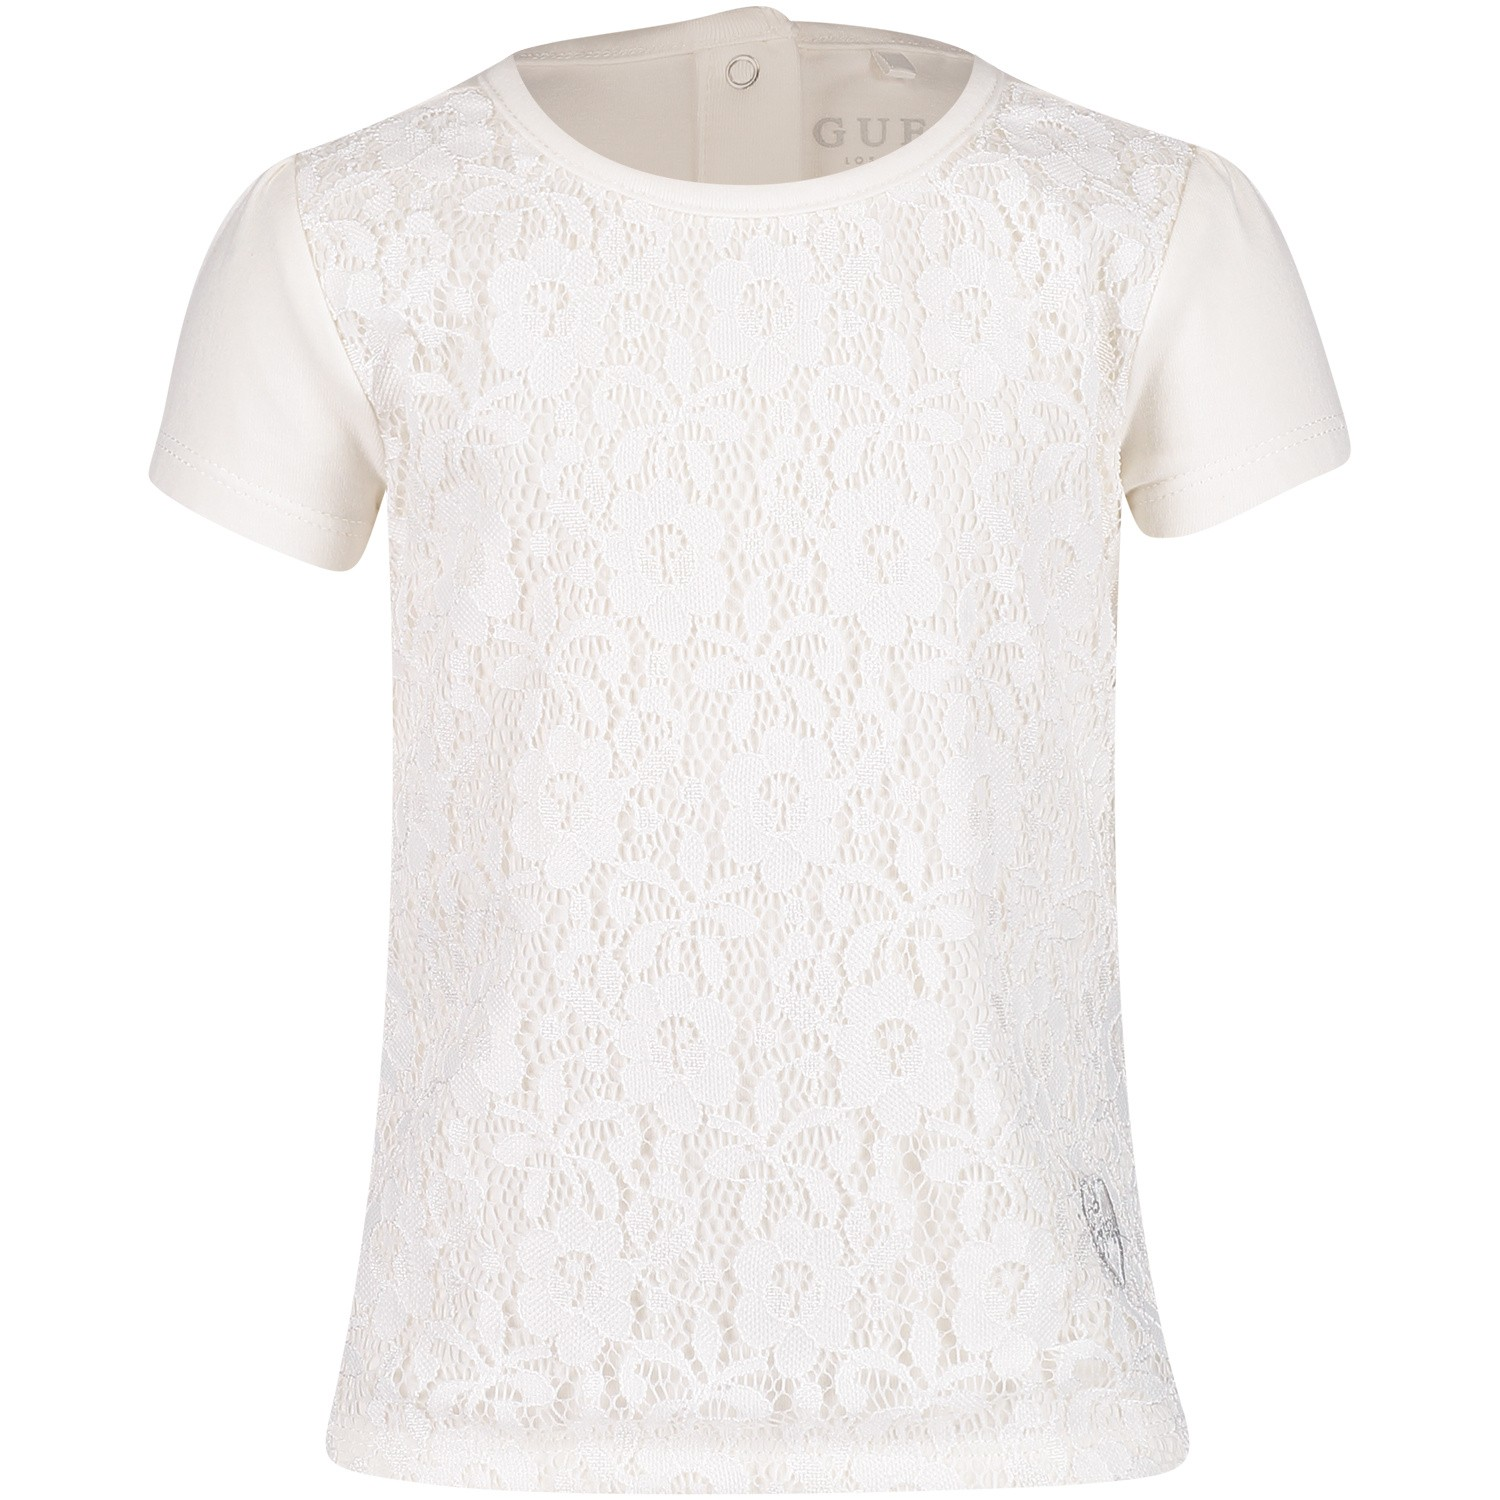 Afbeelding van Guess A91I14 baby t-shirt off white